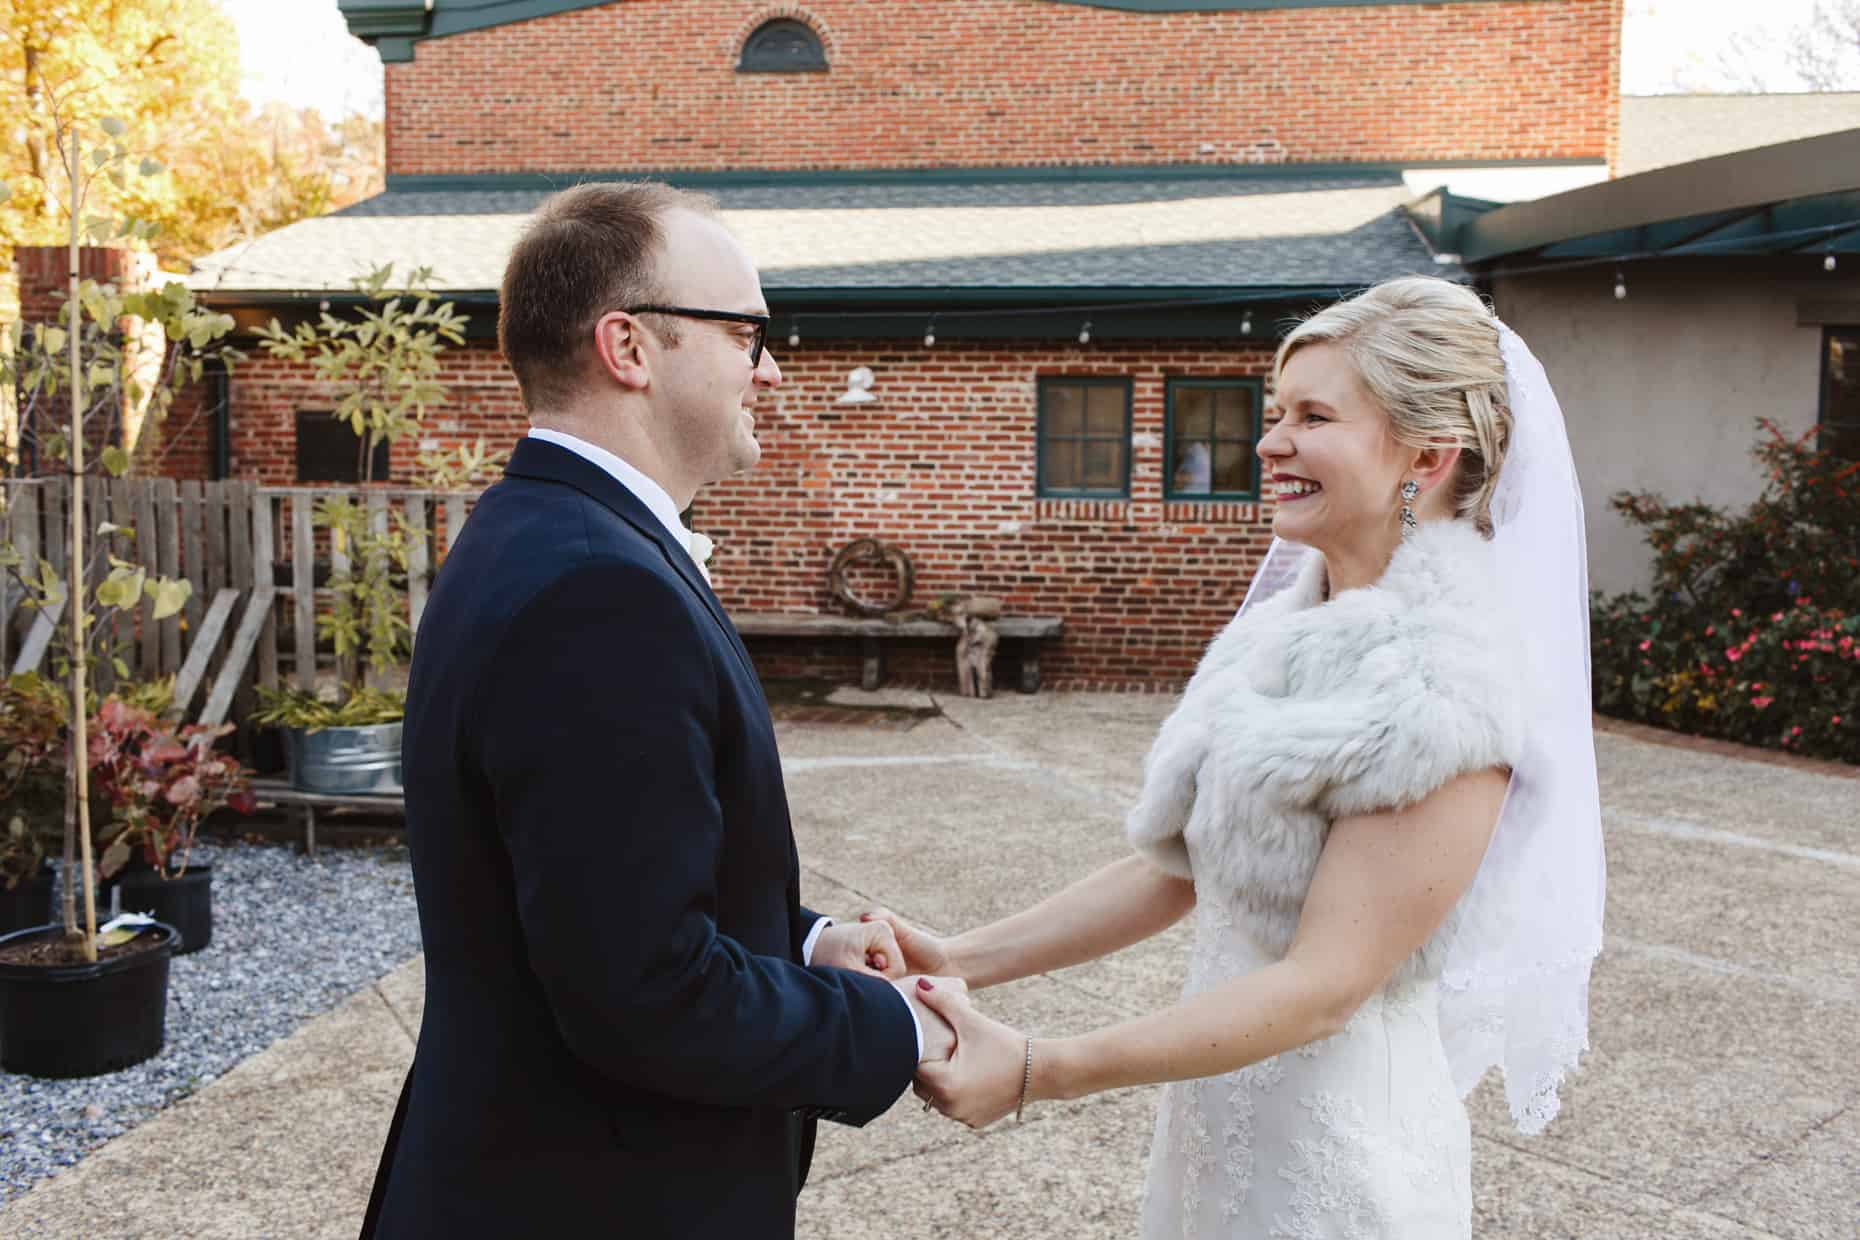 Delaware Center for Horticulture Wedding Photograph